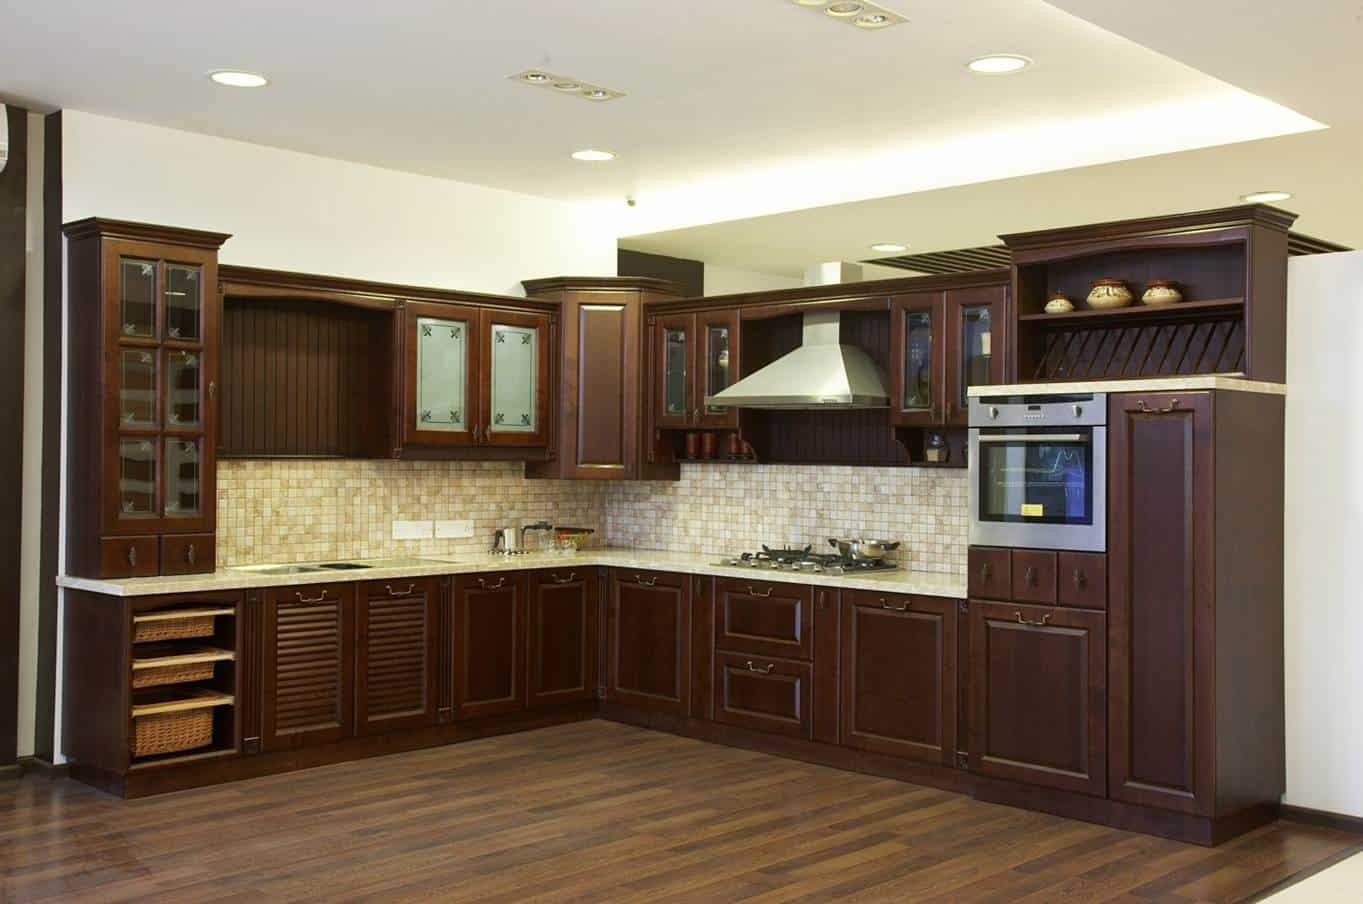 Cabinets with Wooden Finish